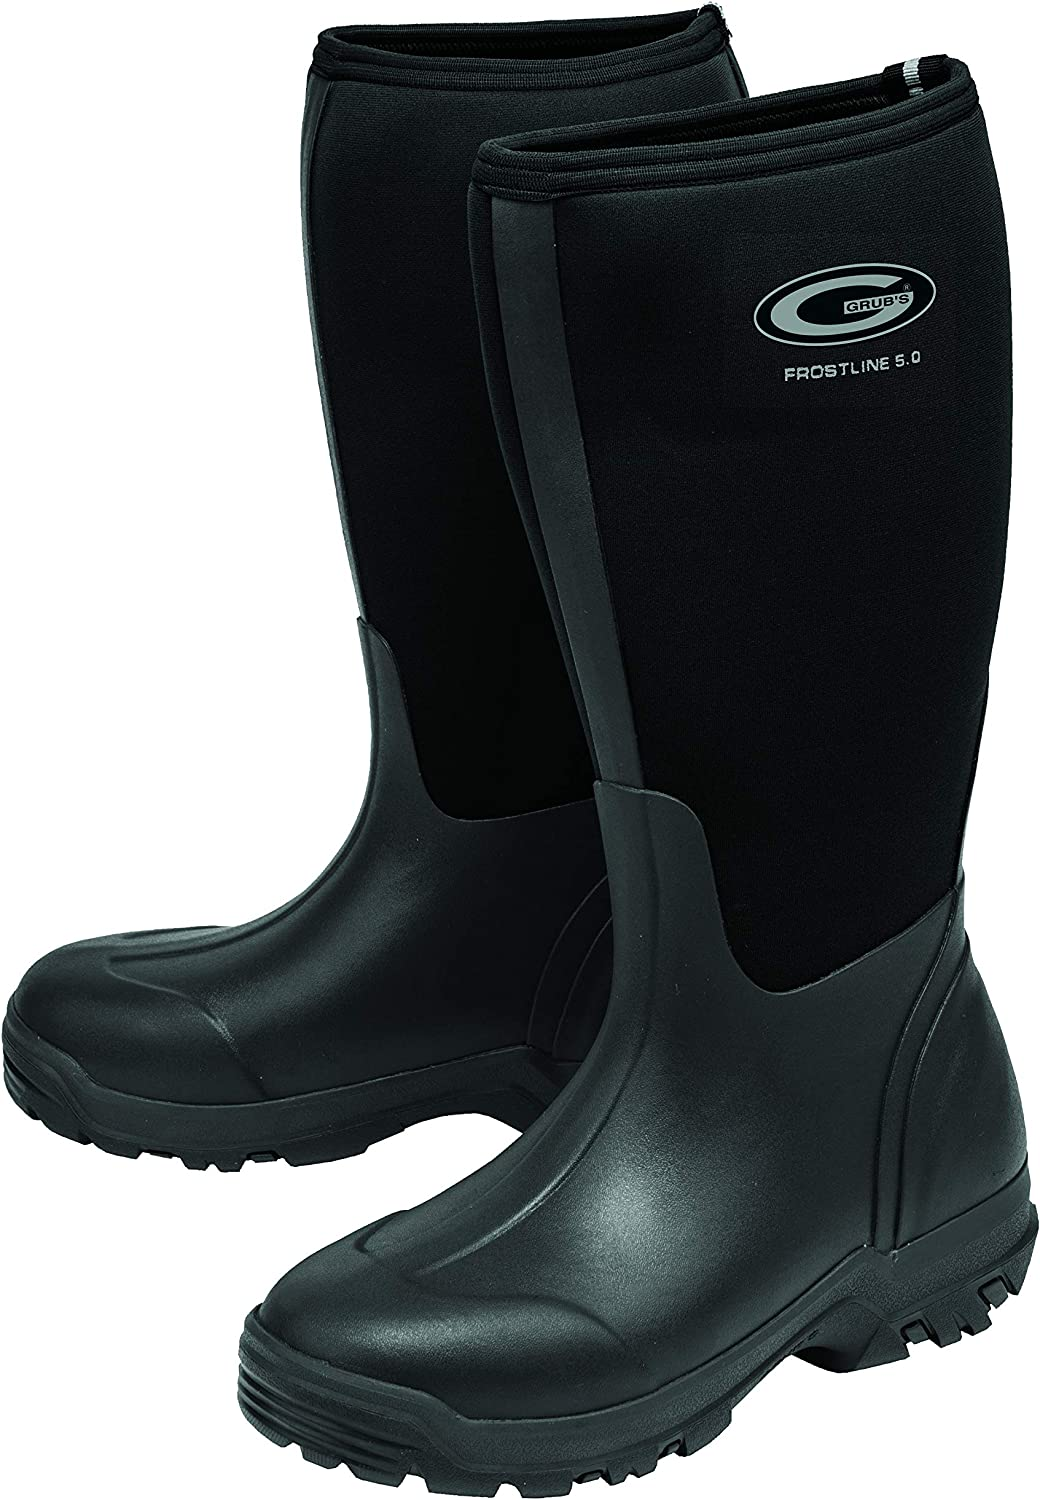 Grubs Boots TR-GRB0055  Black, Size 13